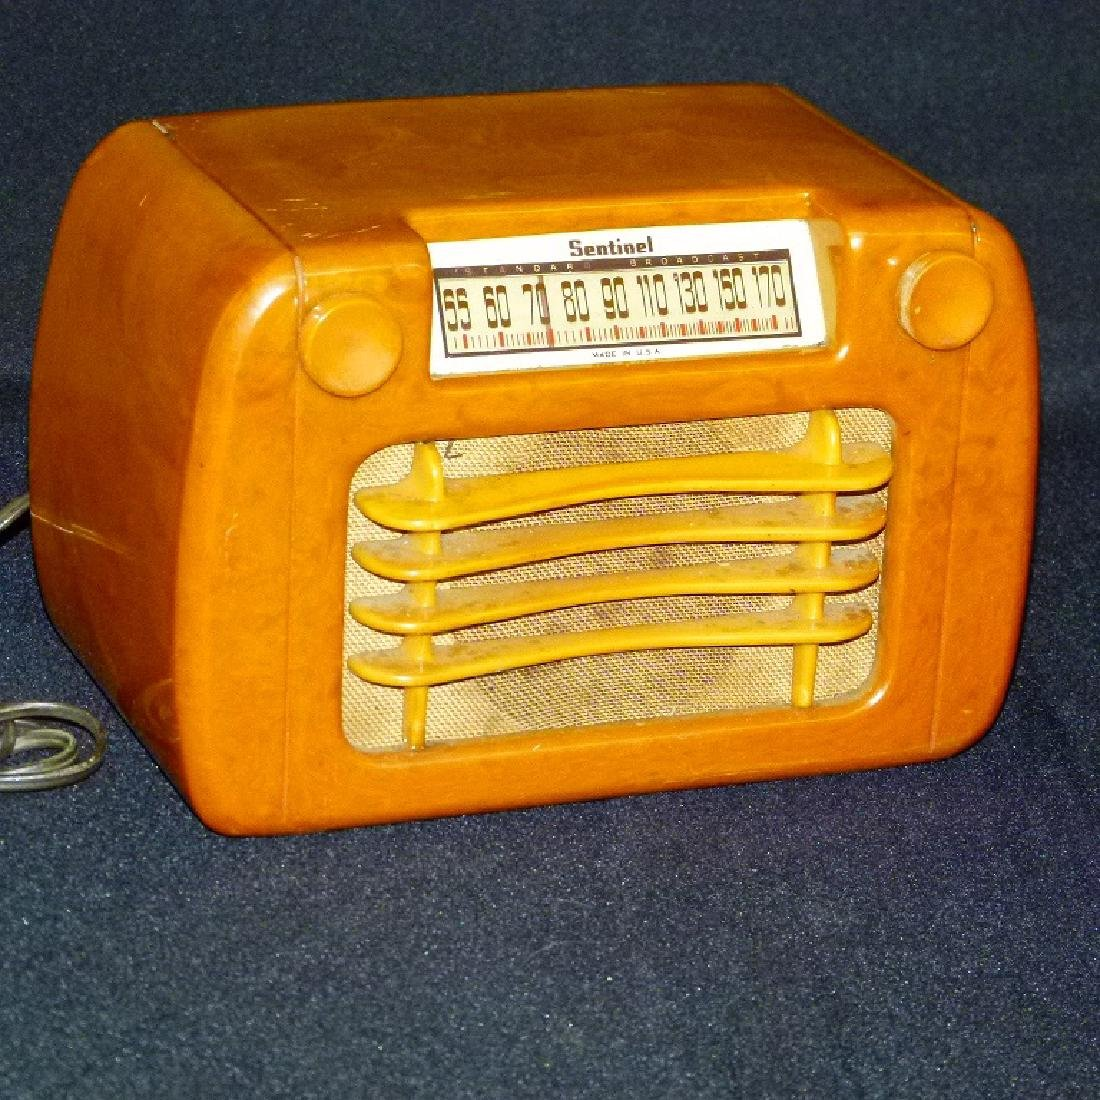 SENTINEL BUTTERSCOTCH CATLIN/BAKELITE TABLE TOP RADIO